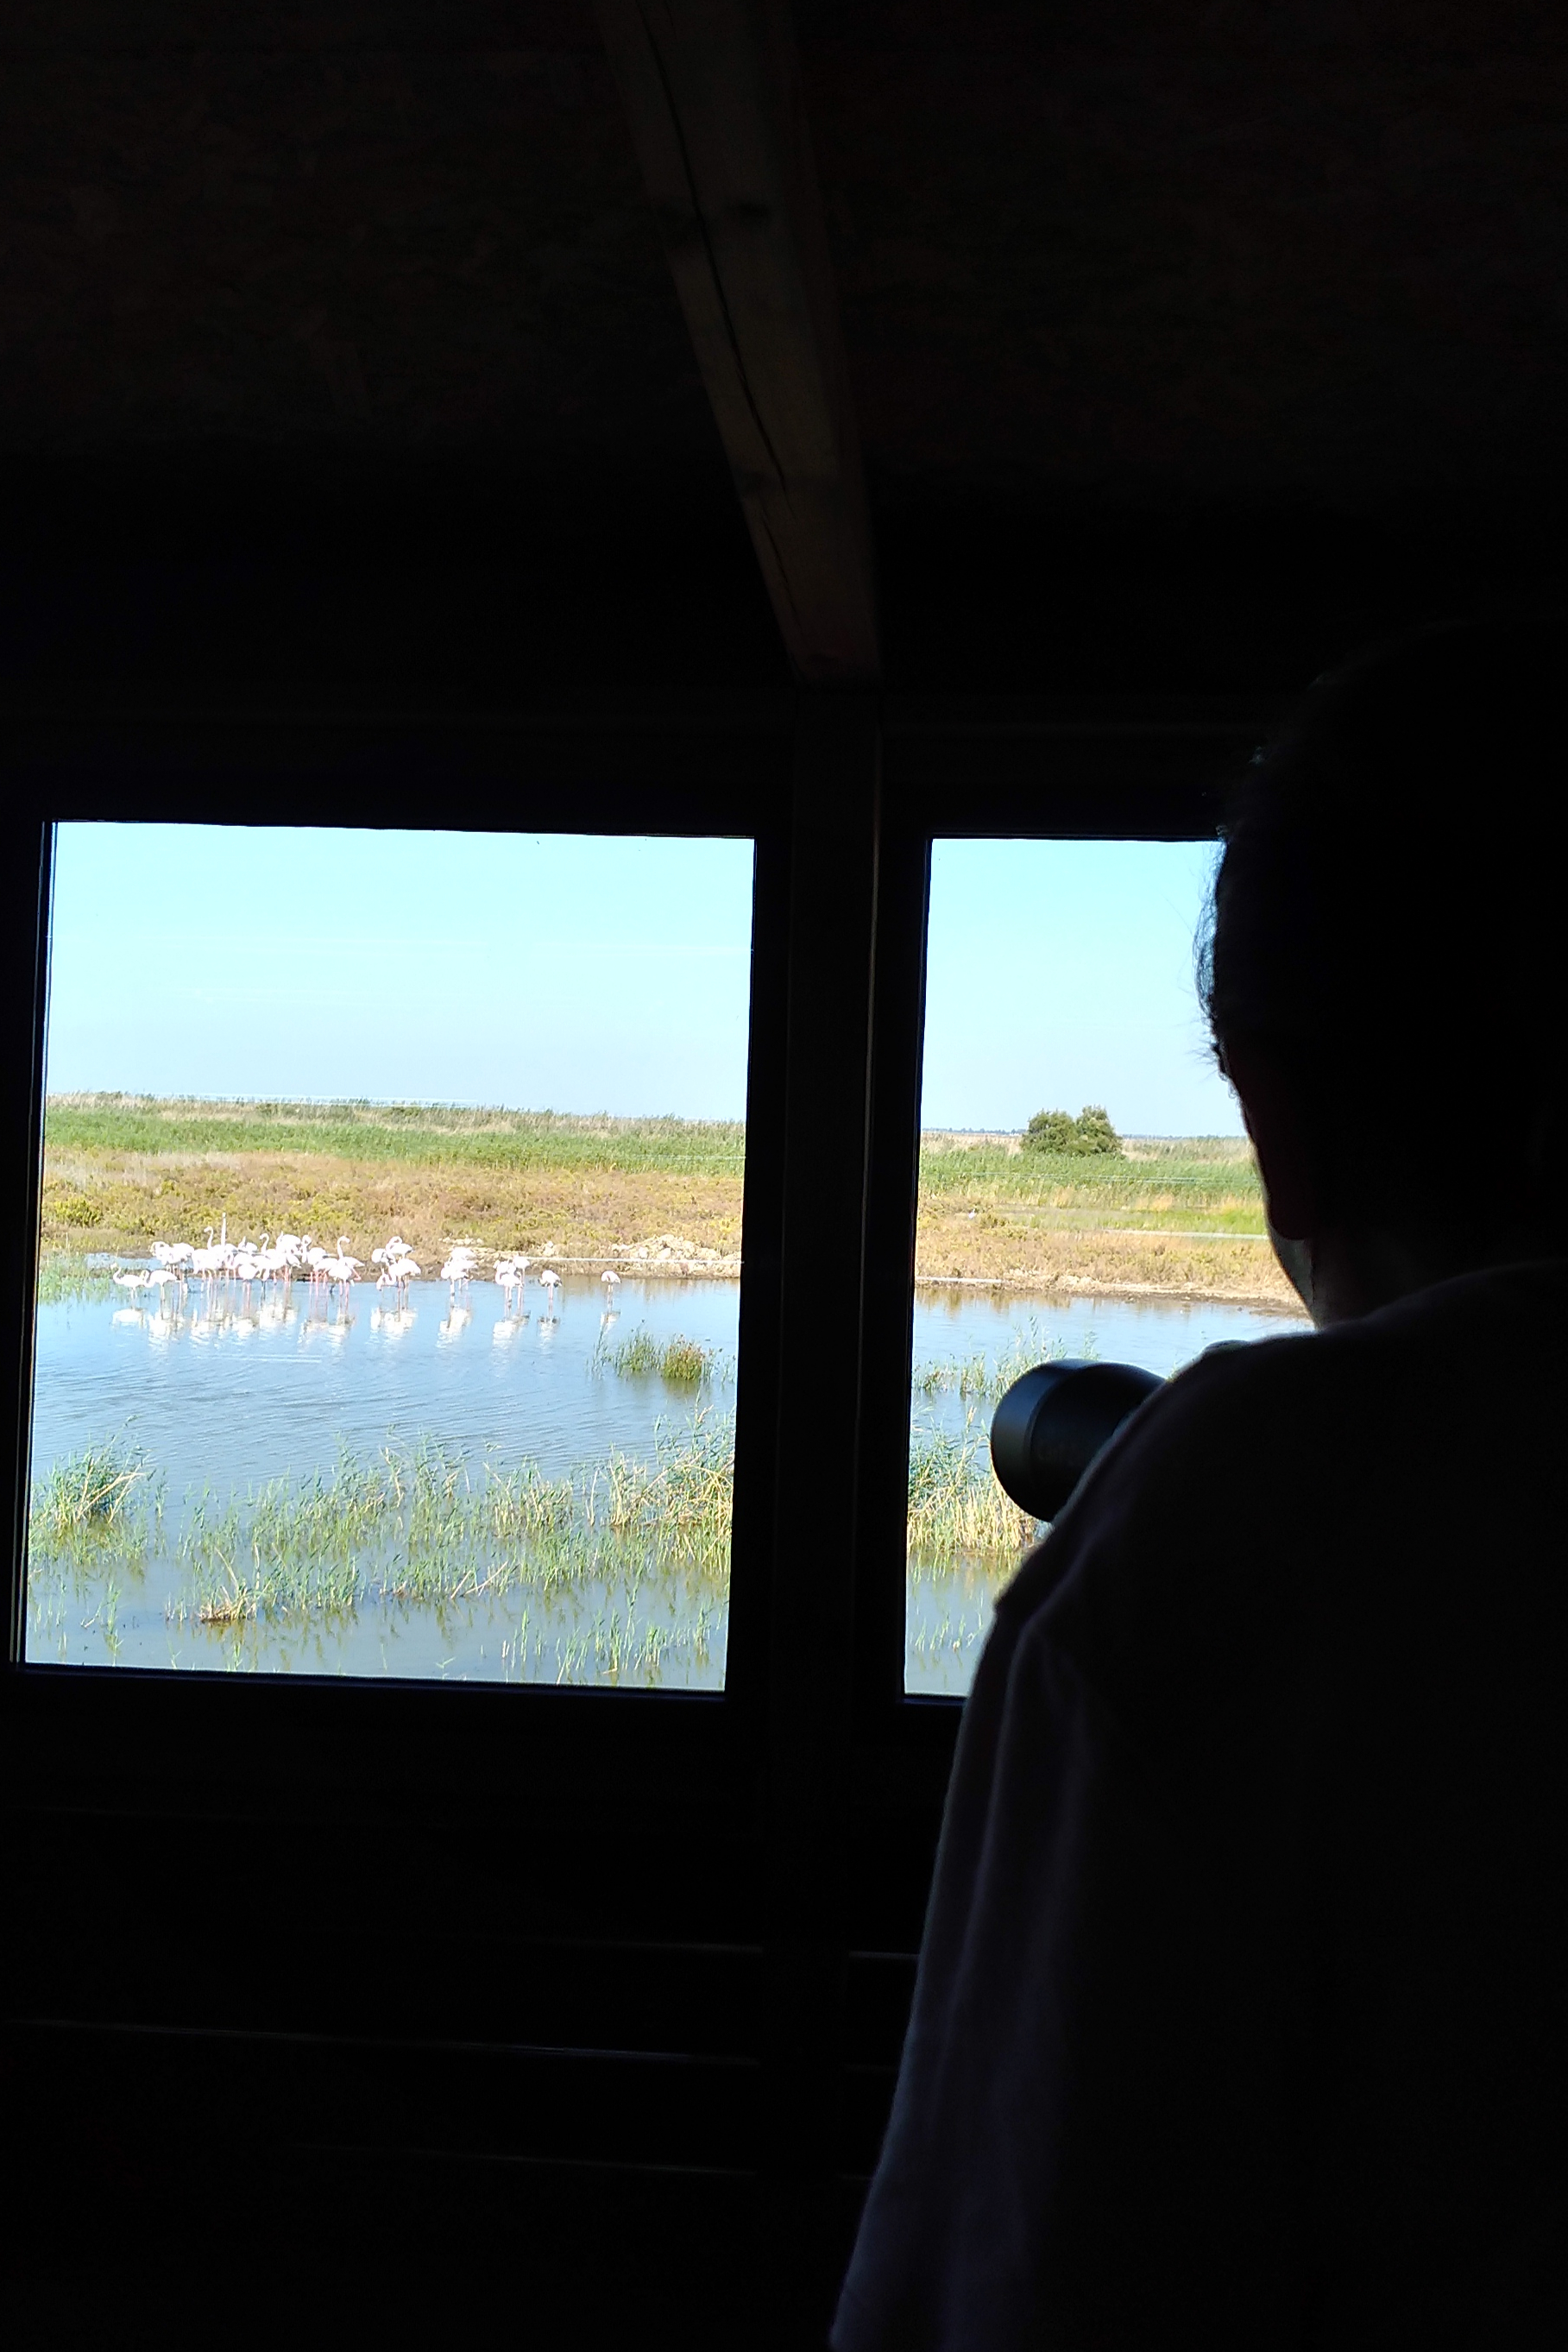 Birdwatching hide with flamingos nearby